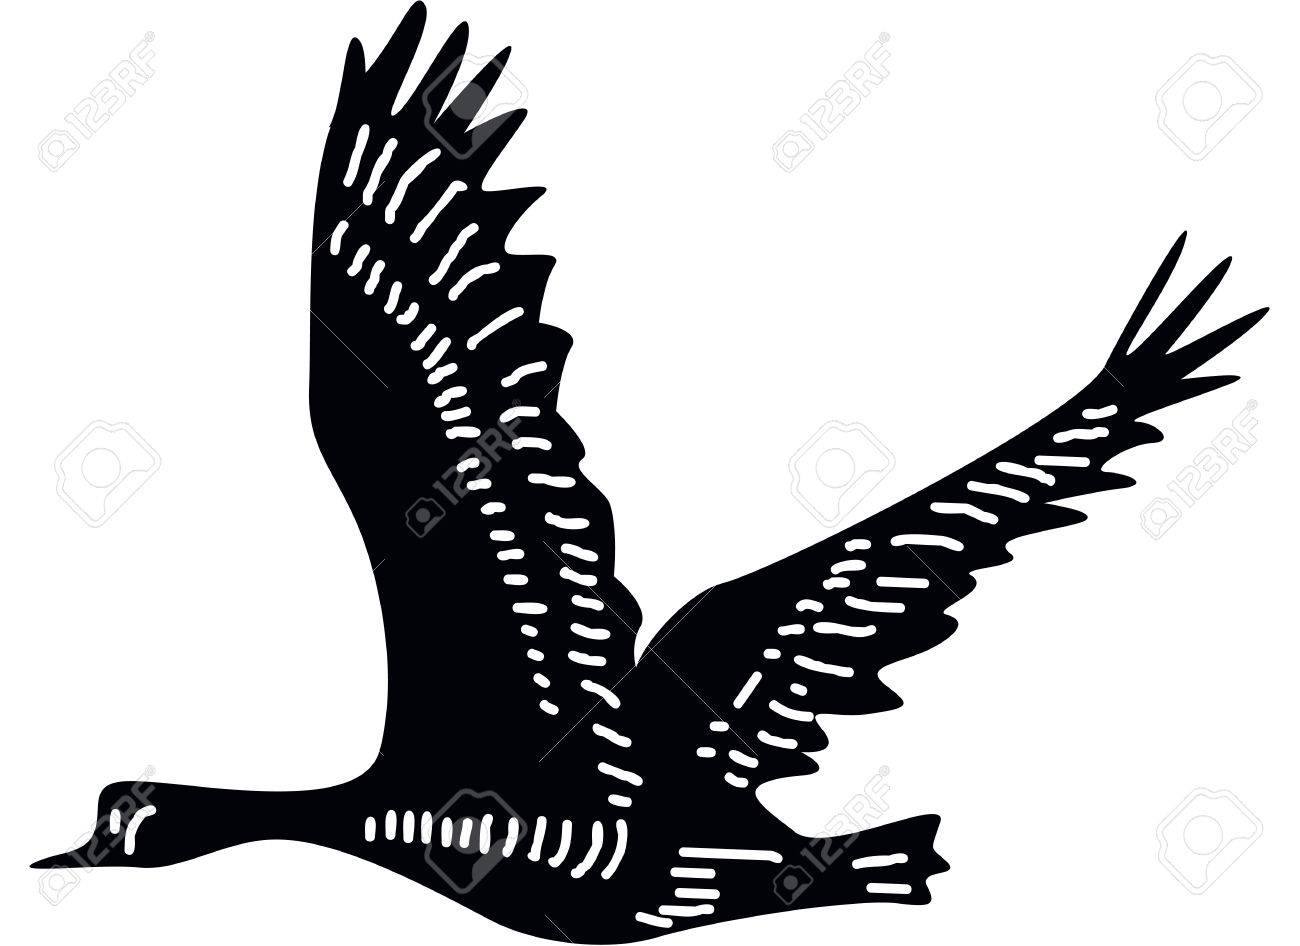 canada goose clipart black and white